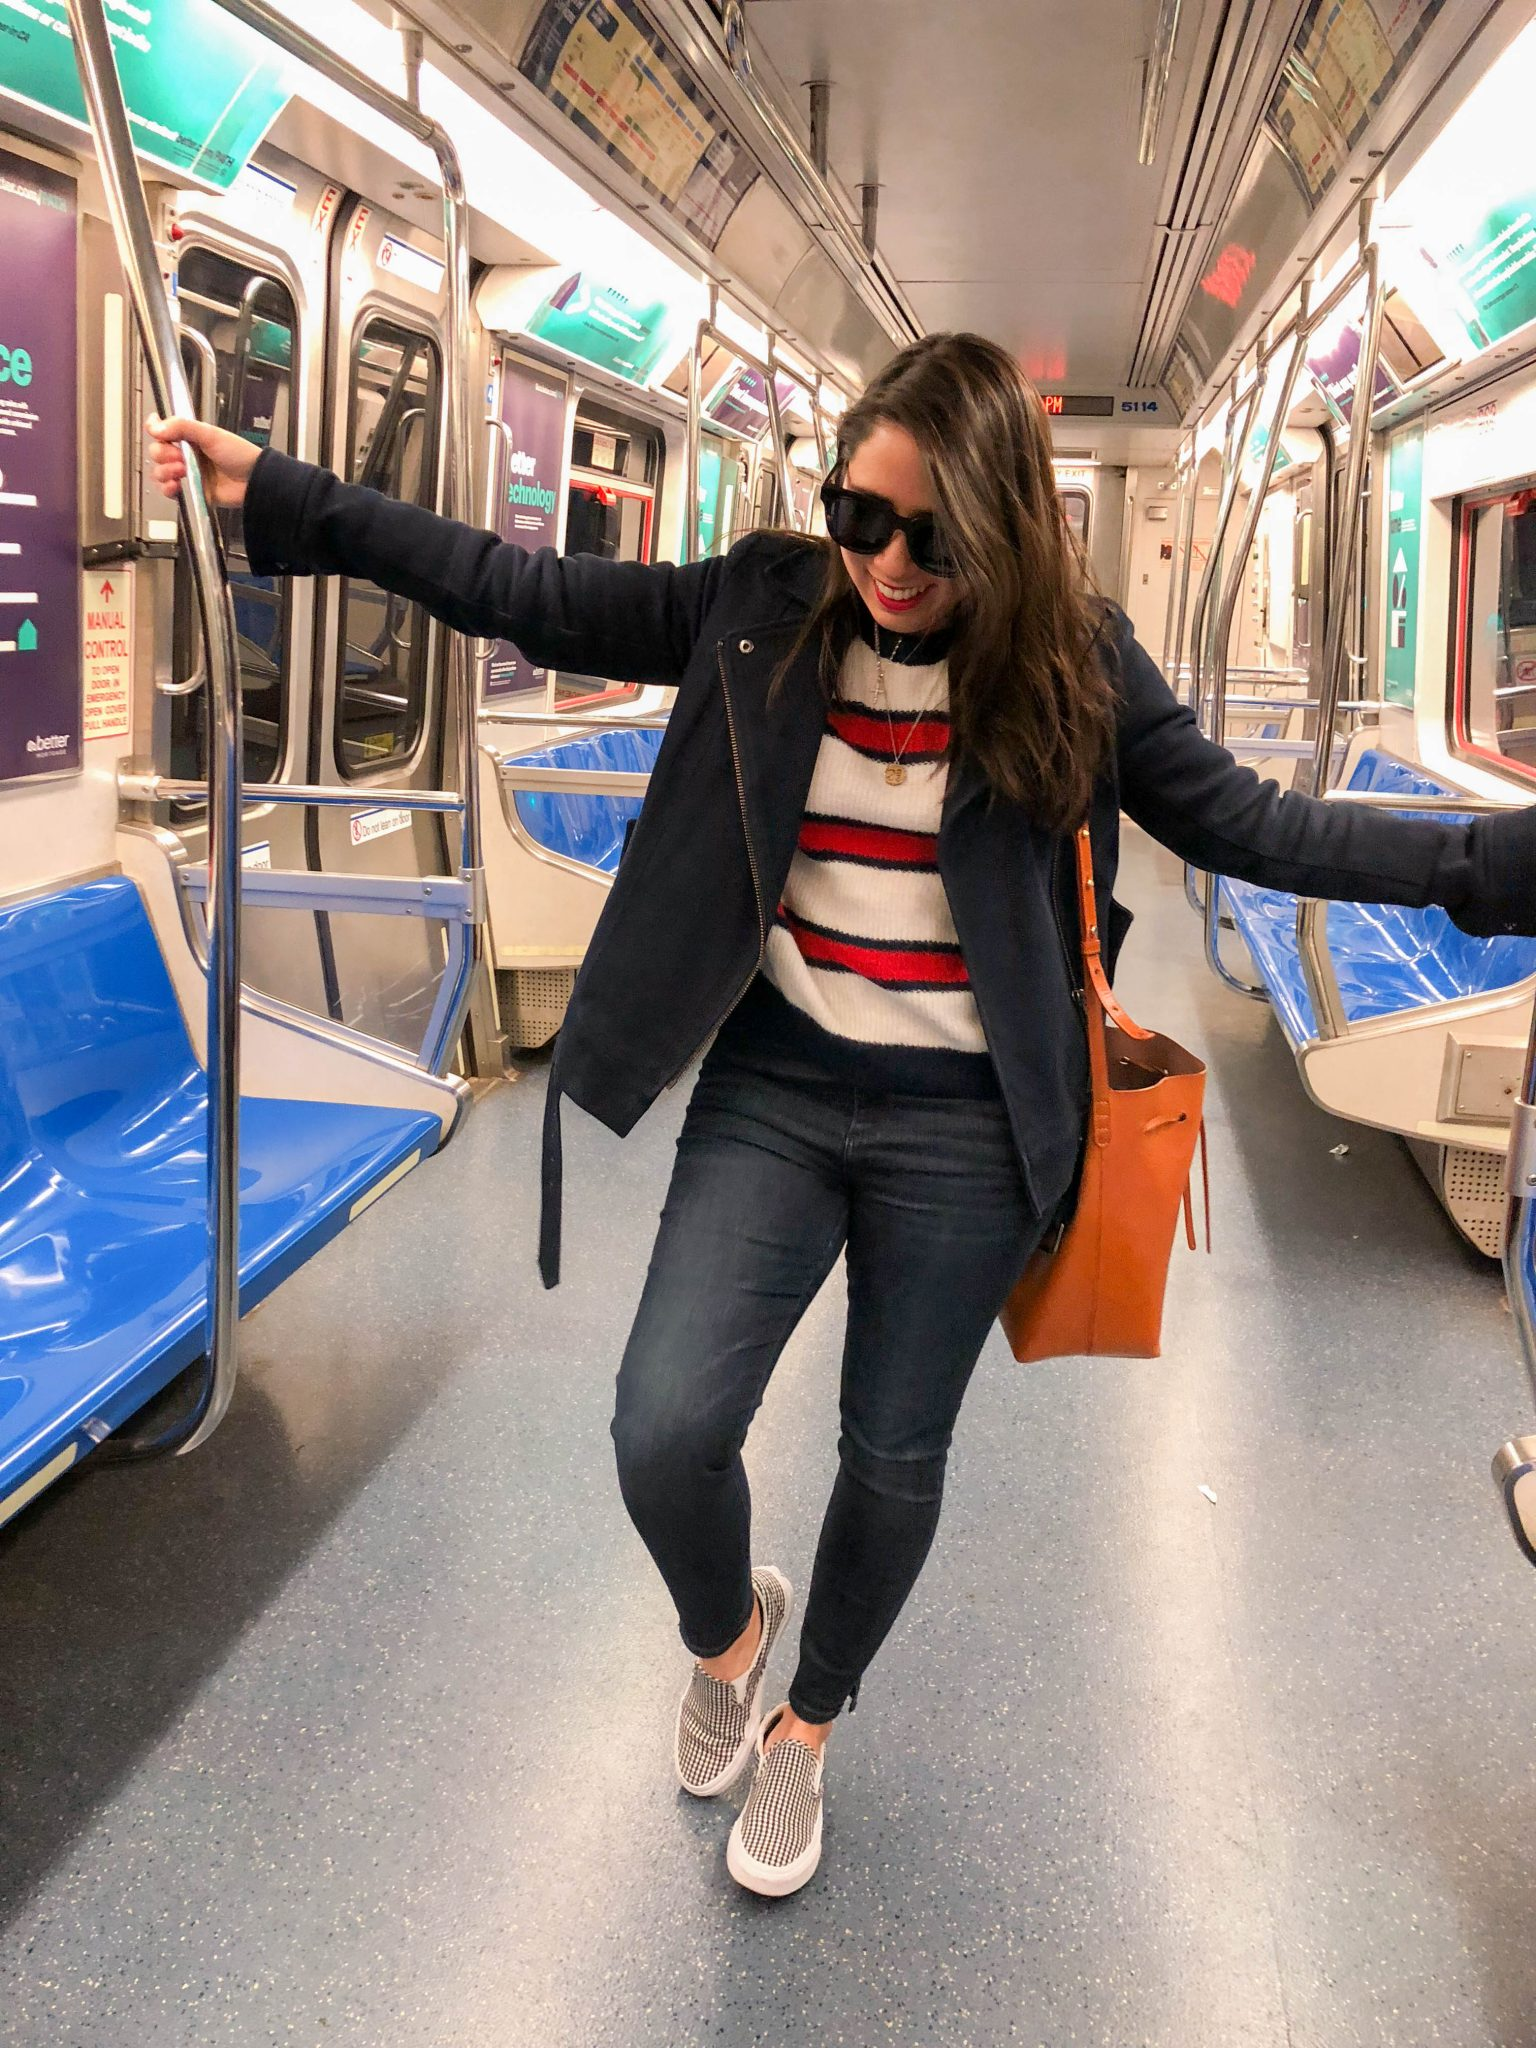 How to Step Out of Your Comfort Zone by popular New York life and style blog, Live Laugh Lind: image of a woman standing inside a subway train.